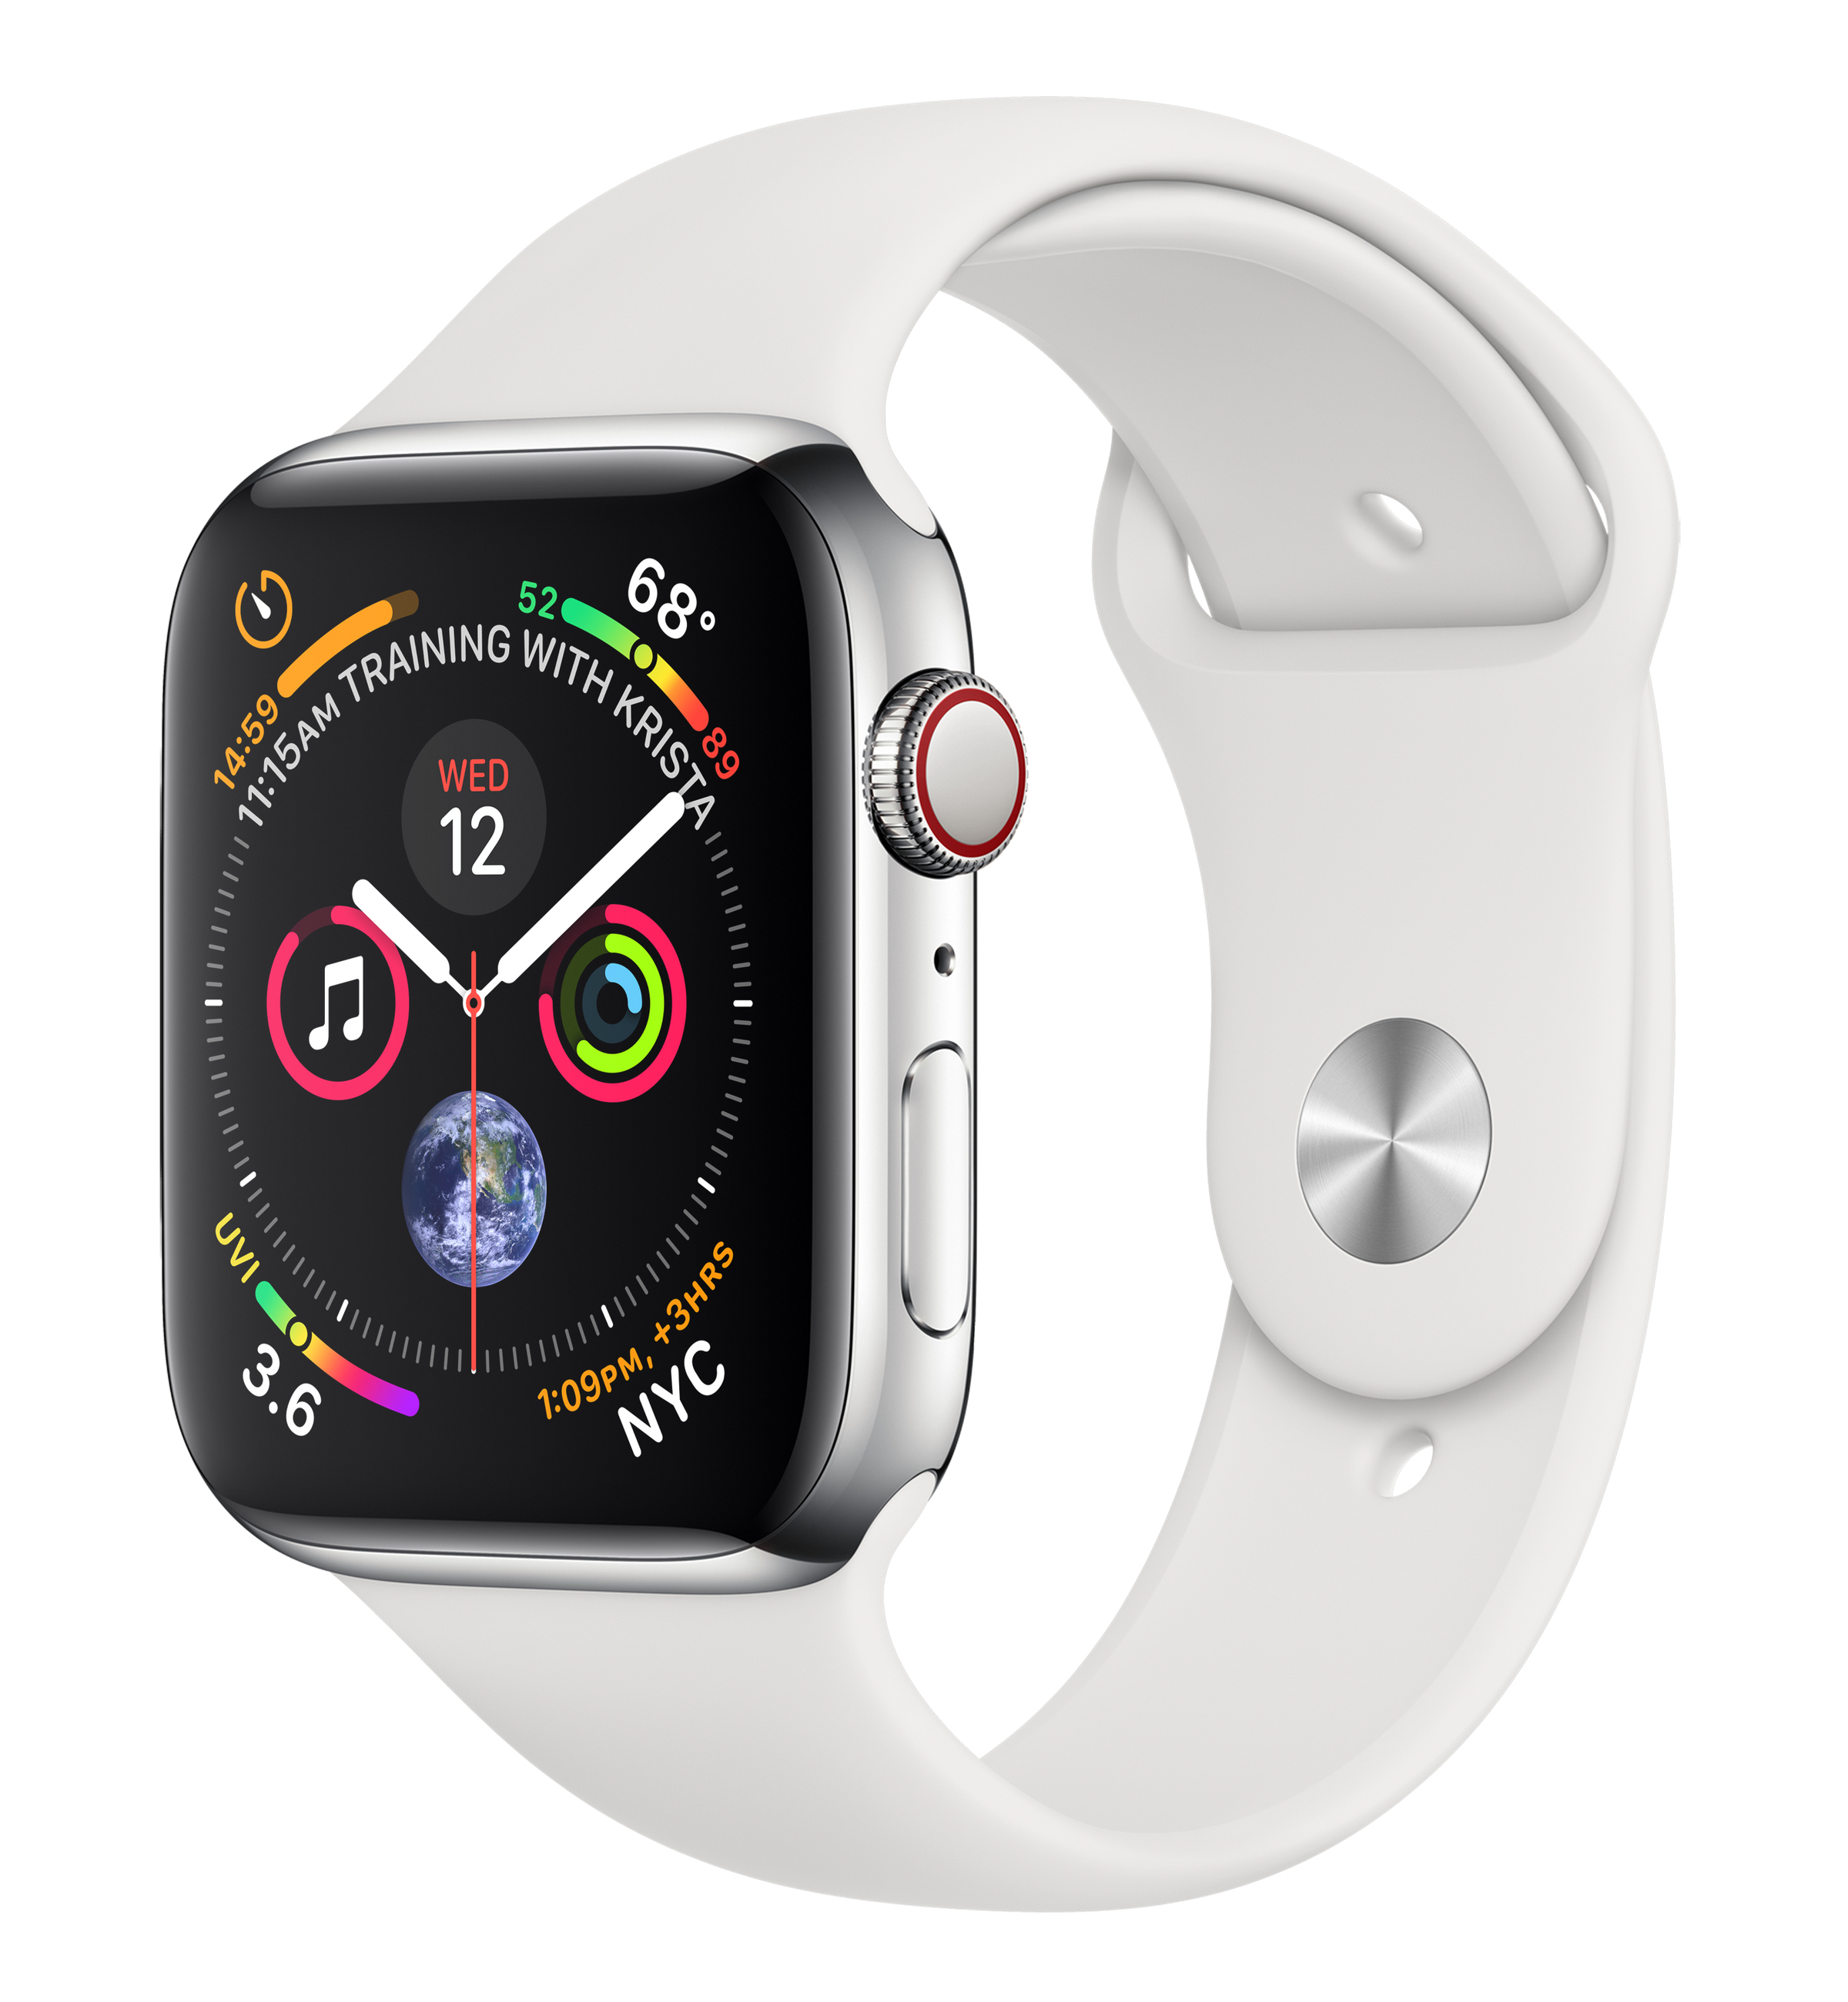 Apple Watch Watch Series 4 für 749,00 Euro